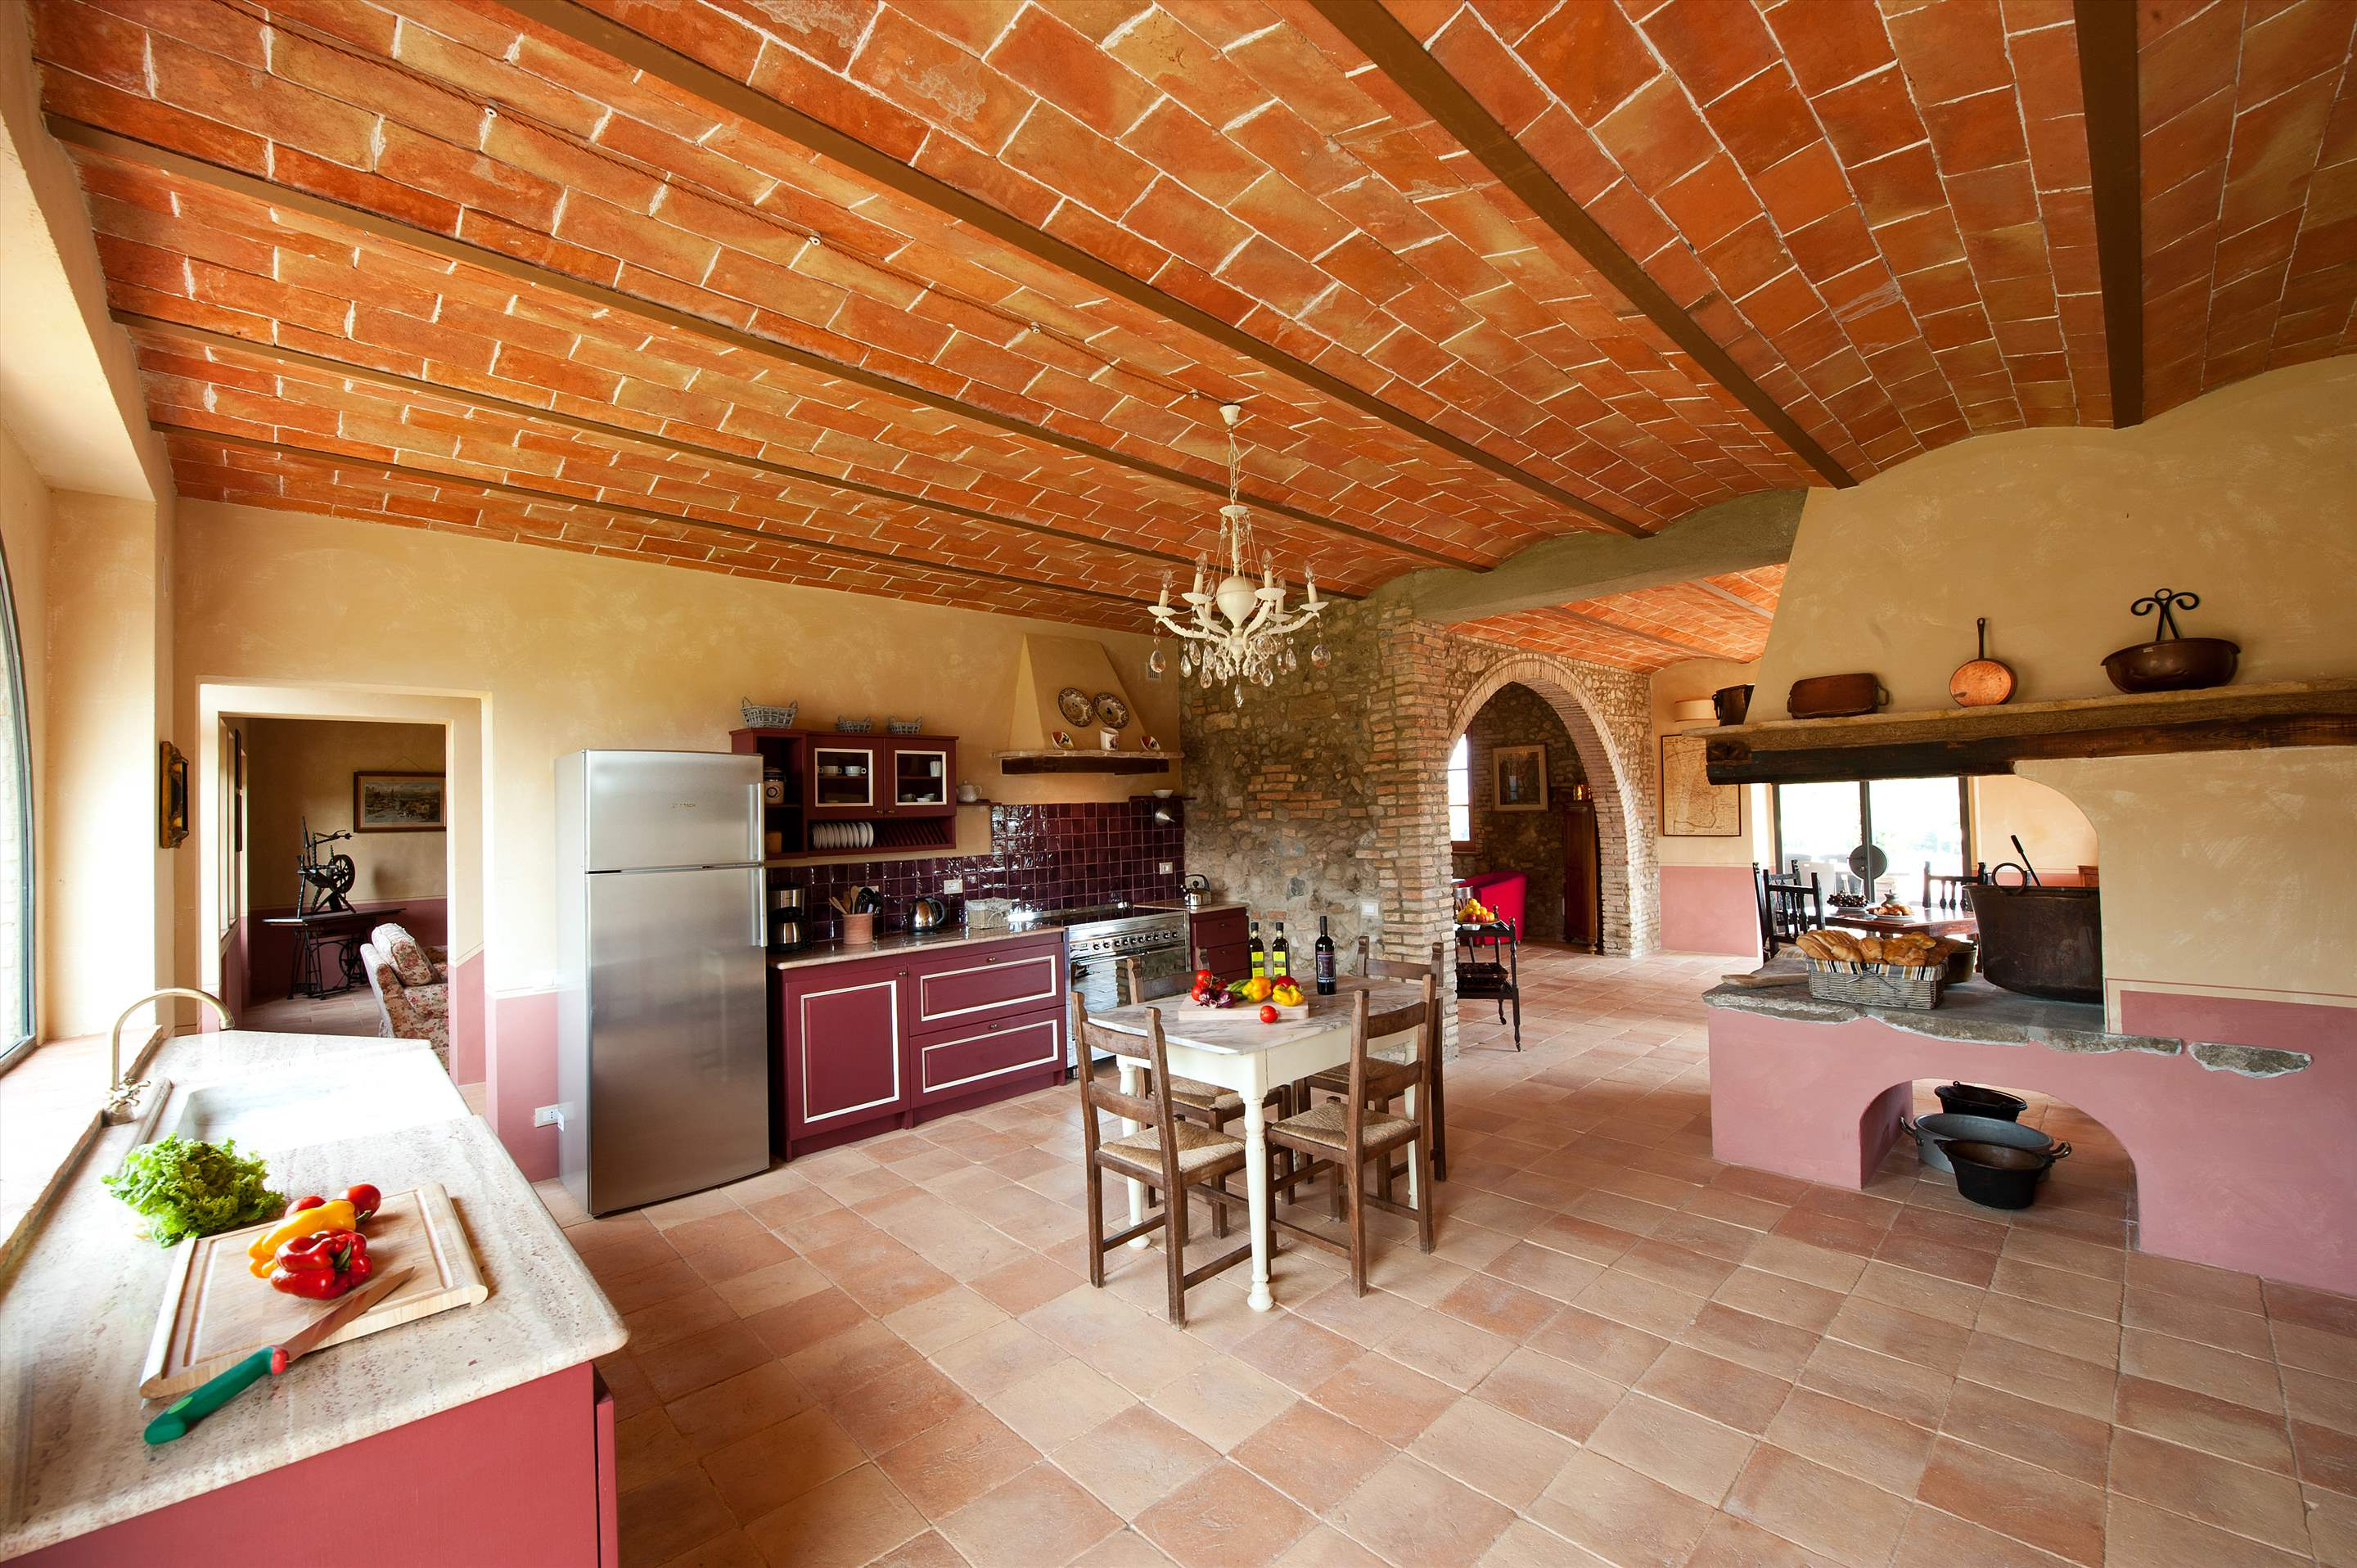 Podere I Gotti, 5 bedroom villa in Tuscany Coast, Tuscany Photo #9